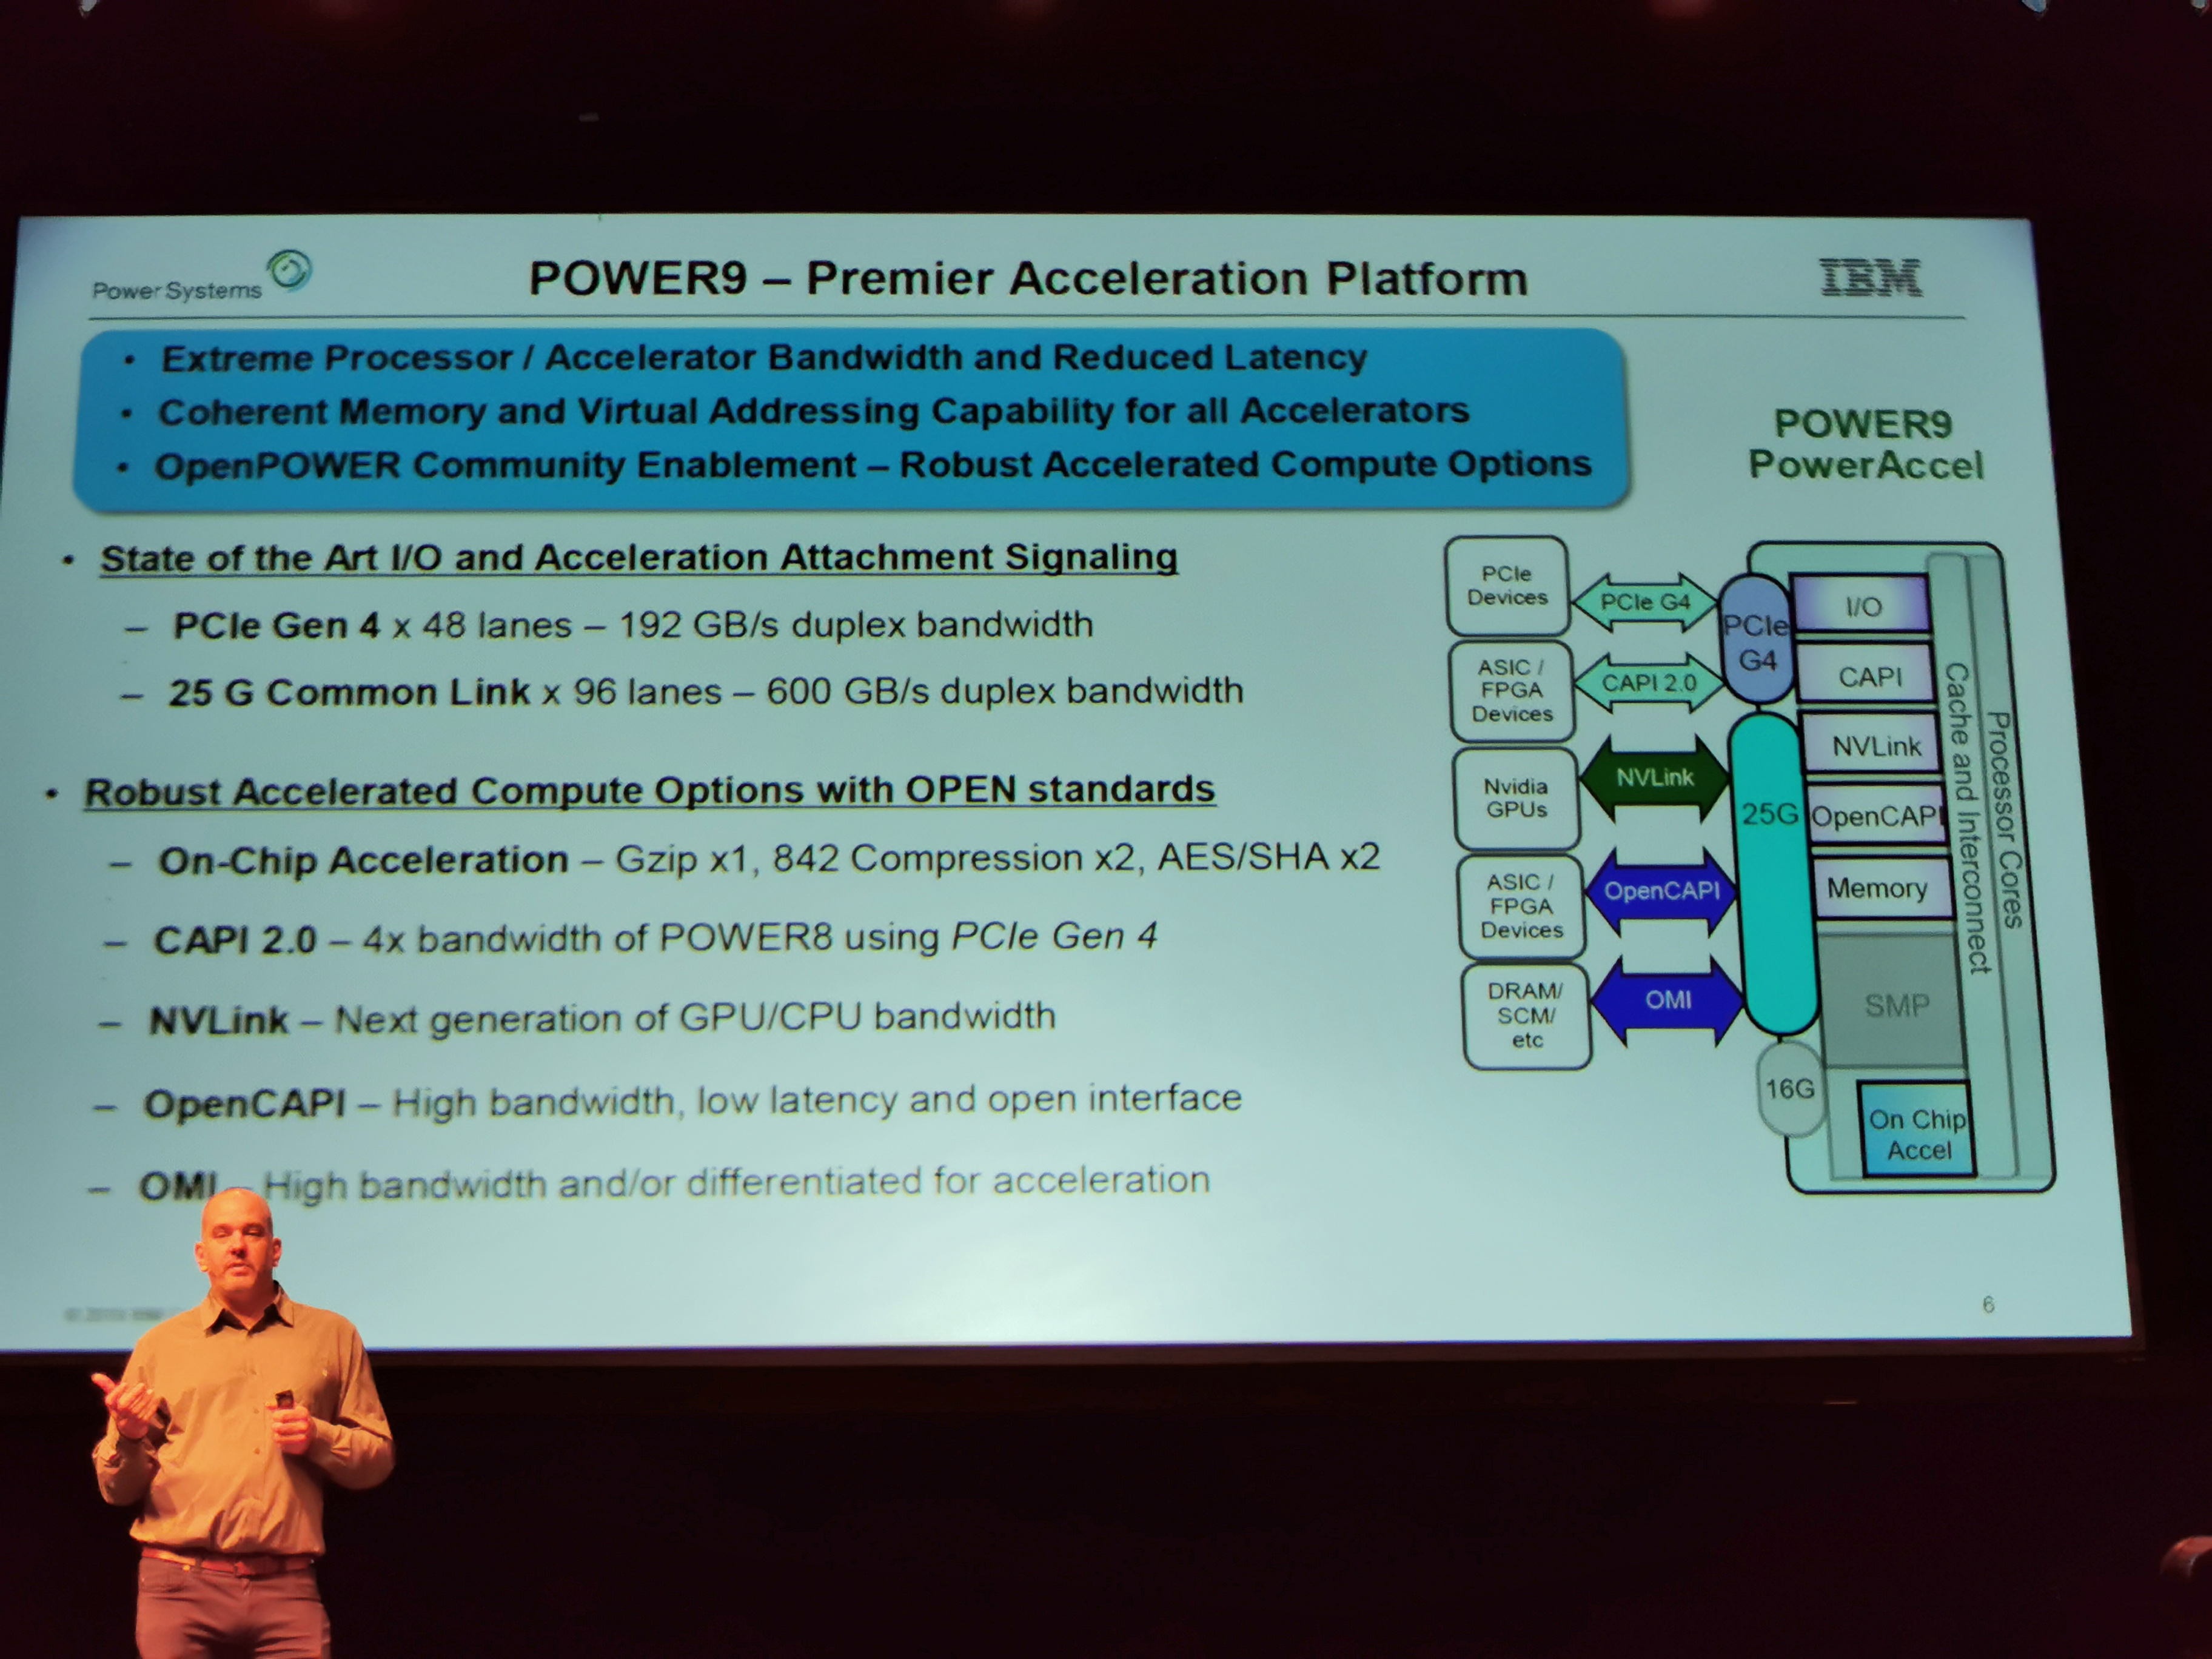 Hot Chips 31 Live Blogs: IBM's Next Generation POWER